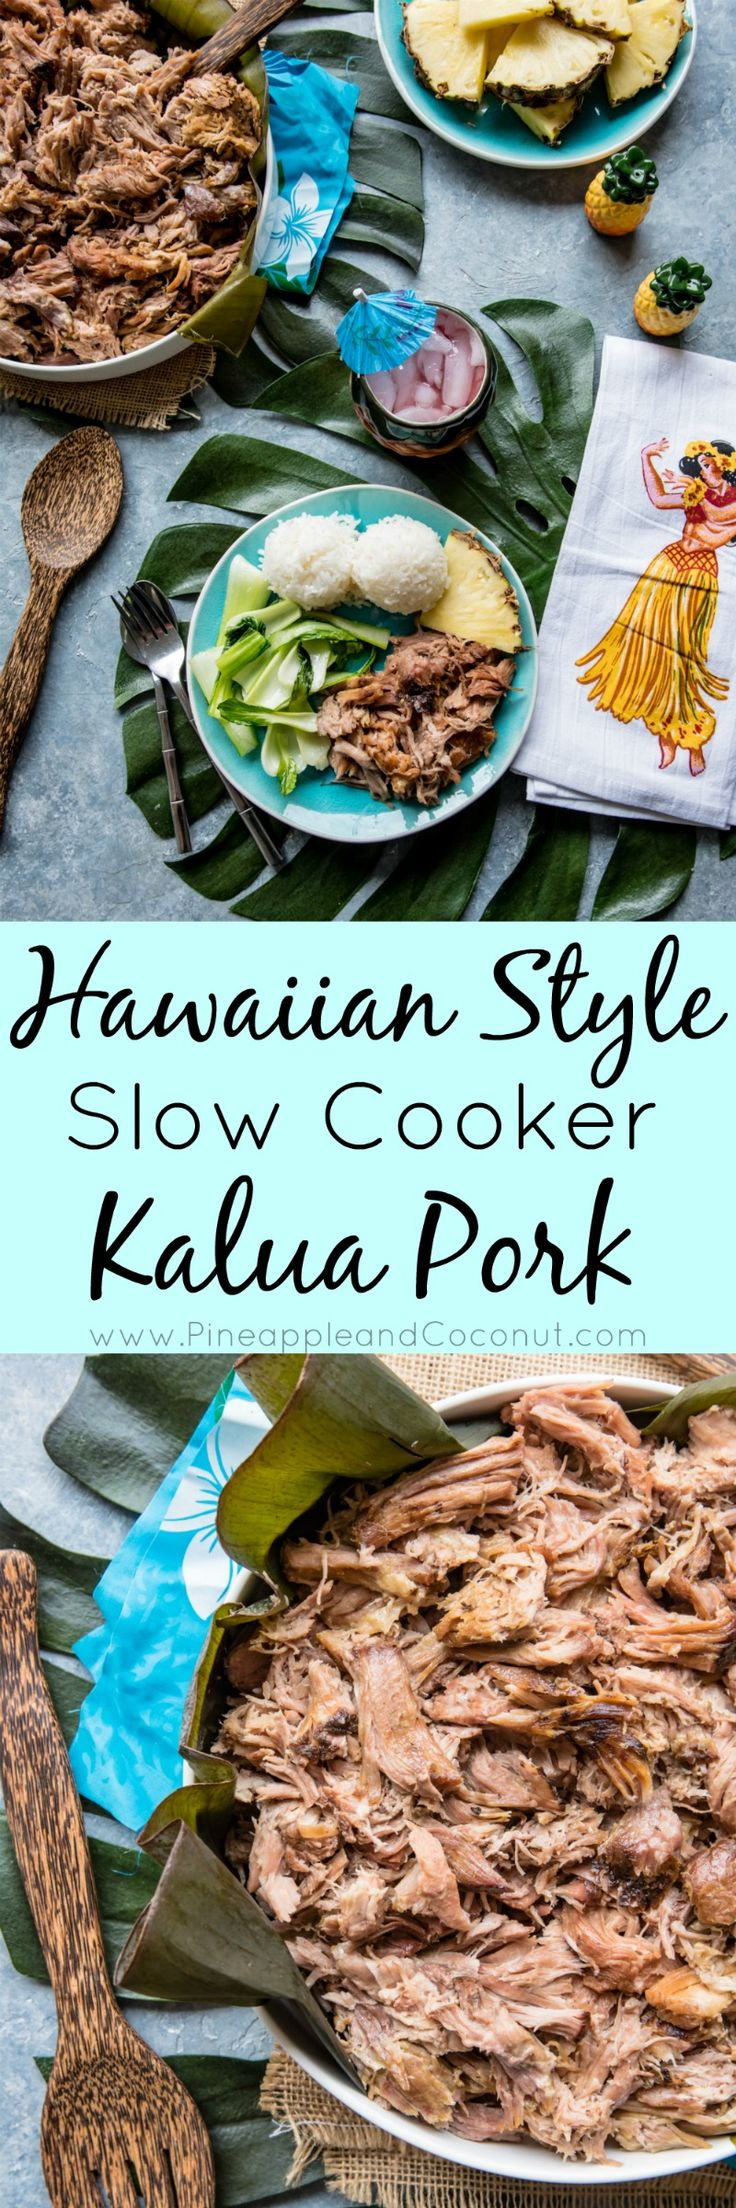 231 best Party : Hawaiian images on Pinterest | Petit fours ...